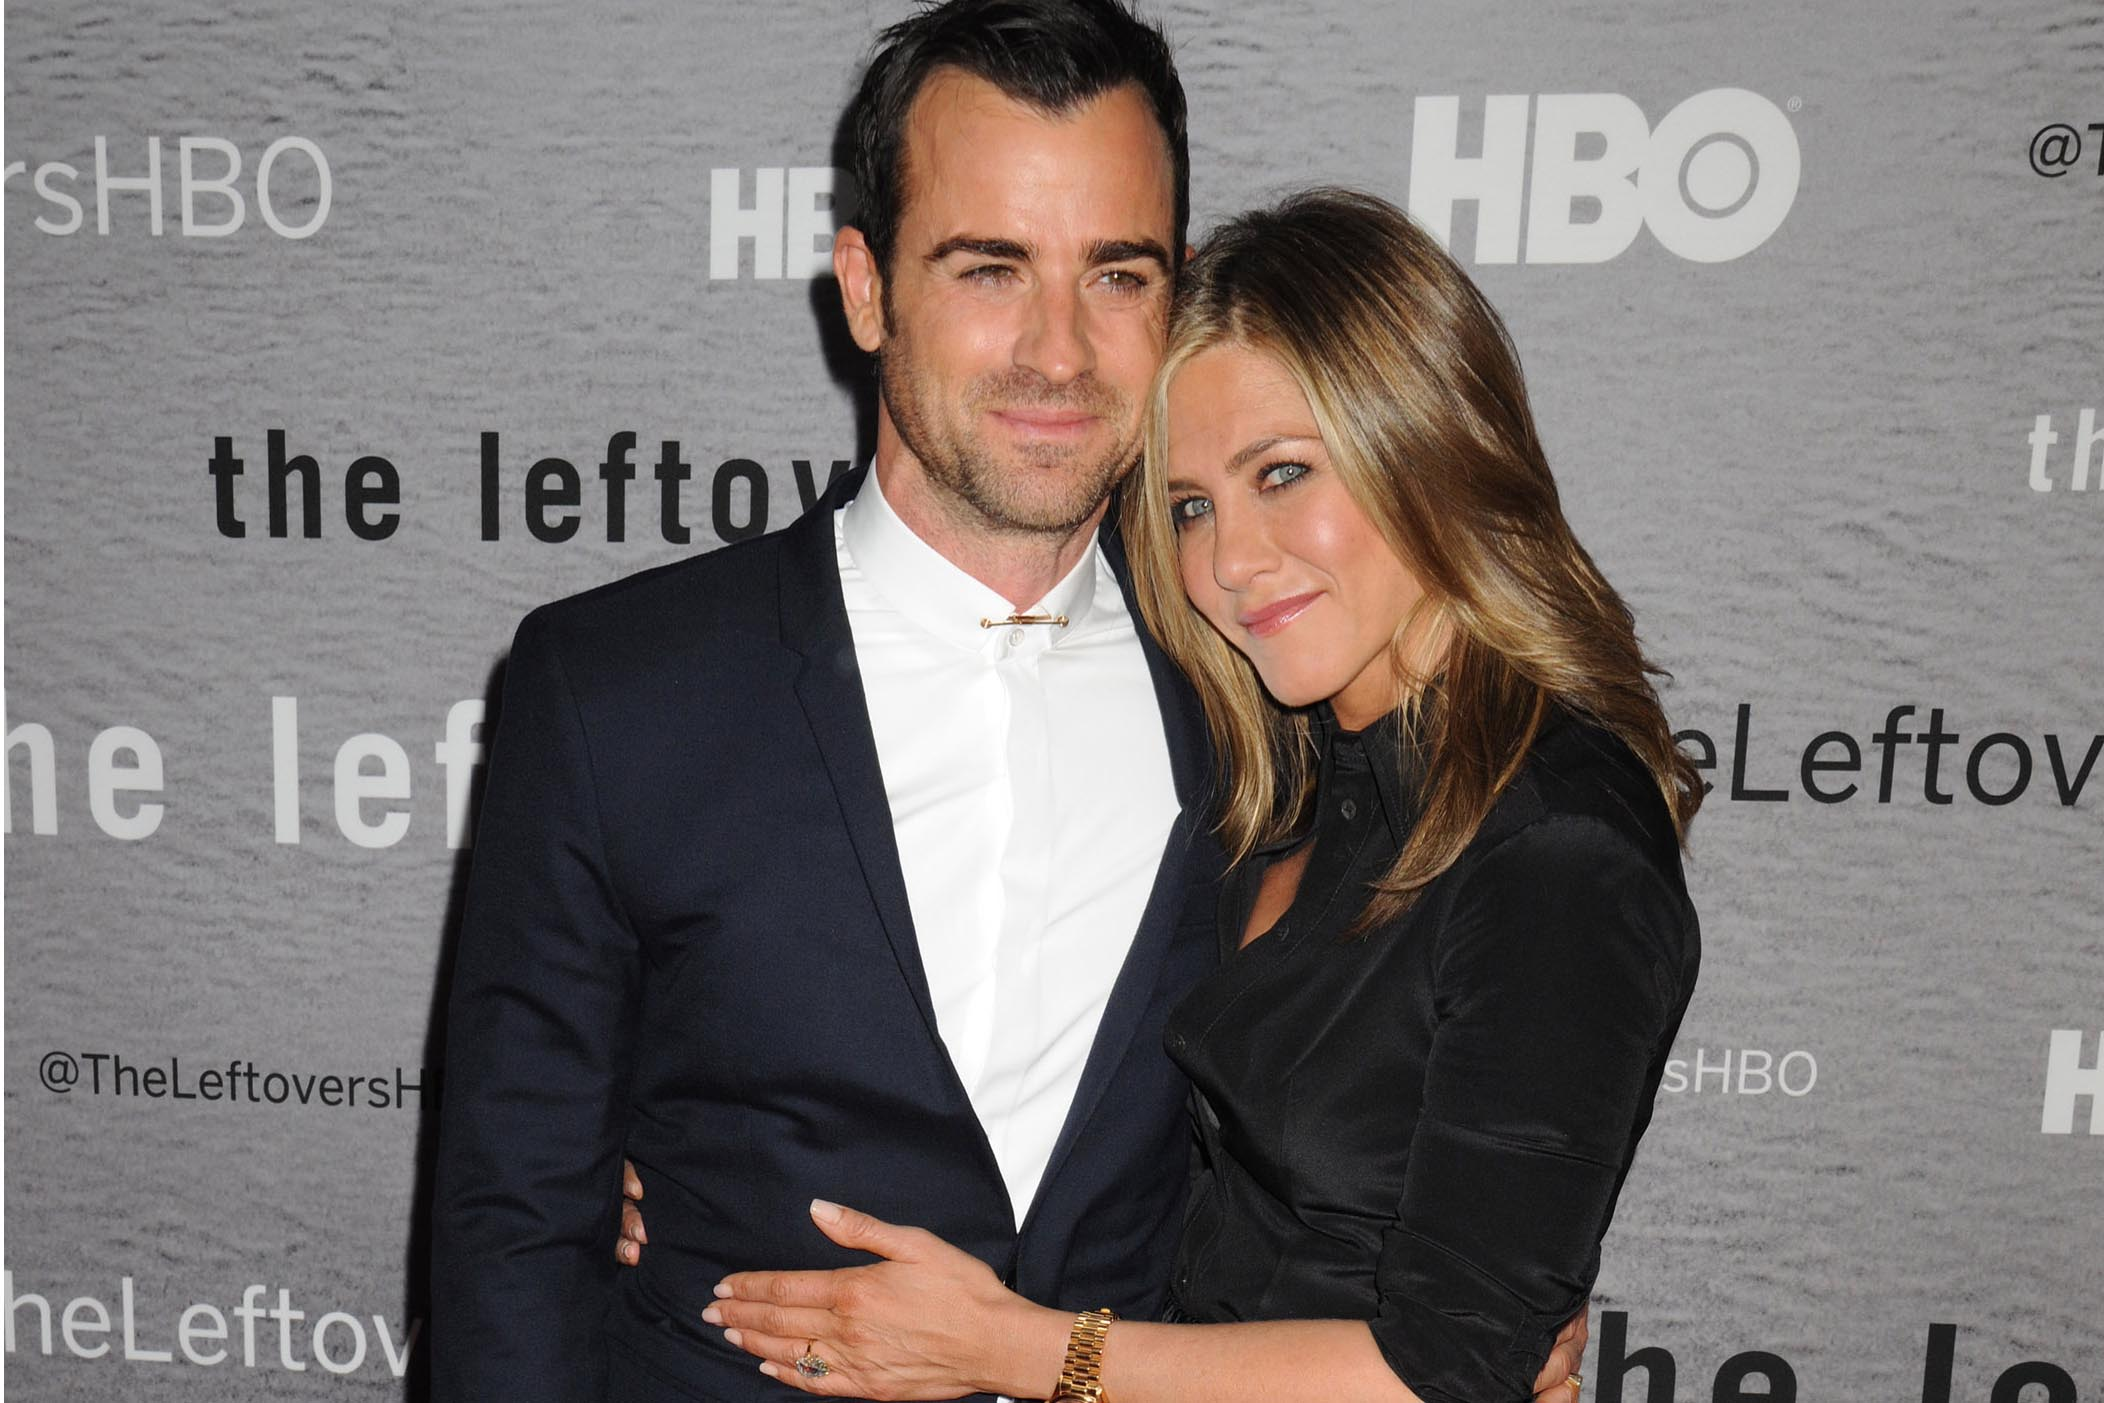 """Consciously coupled lovebirds actors Justin Theroux (star of the series) and Jennifer Aniston arrive for the New York Premiere of HBO's new series """"The Leftovers"""", held at the NYU Skirball Center in Greenwich Village in NYC Pictured: Justin Theroux and Jennifer Aniston Ref: SPL786039 230614 Picture by: Johns PKI/Splash News Splash News and Pictures Los Angeles: 310-821-2666 New York: 212-619-2666 London: 870-934-2666 photodesk@splashnews.com"""